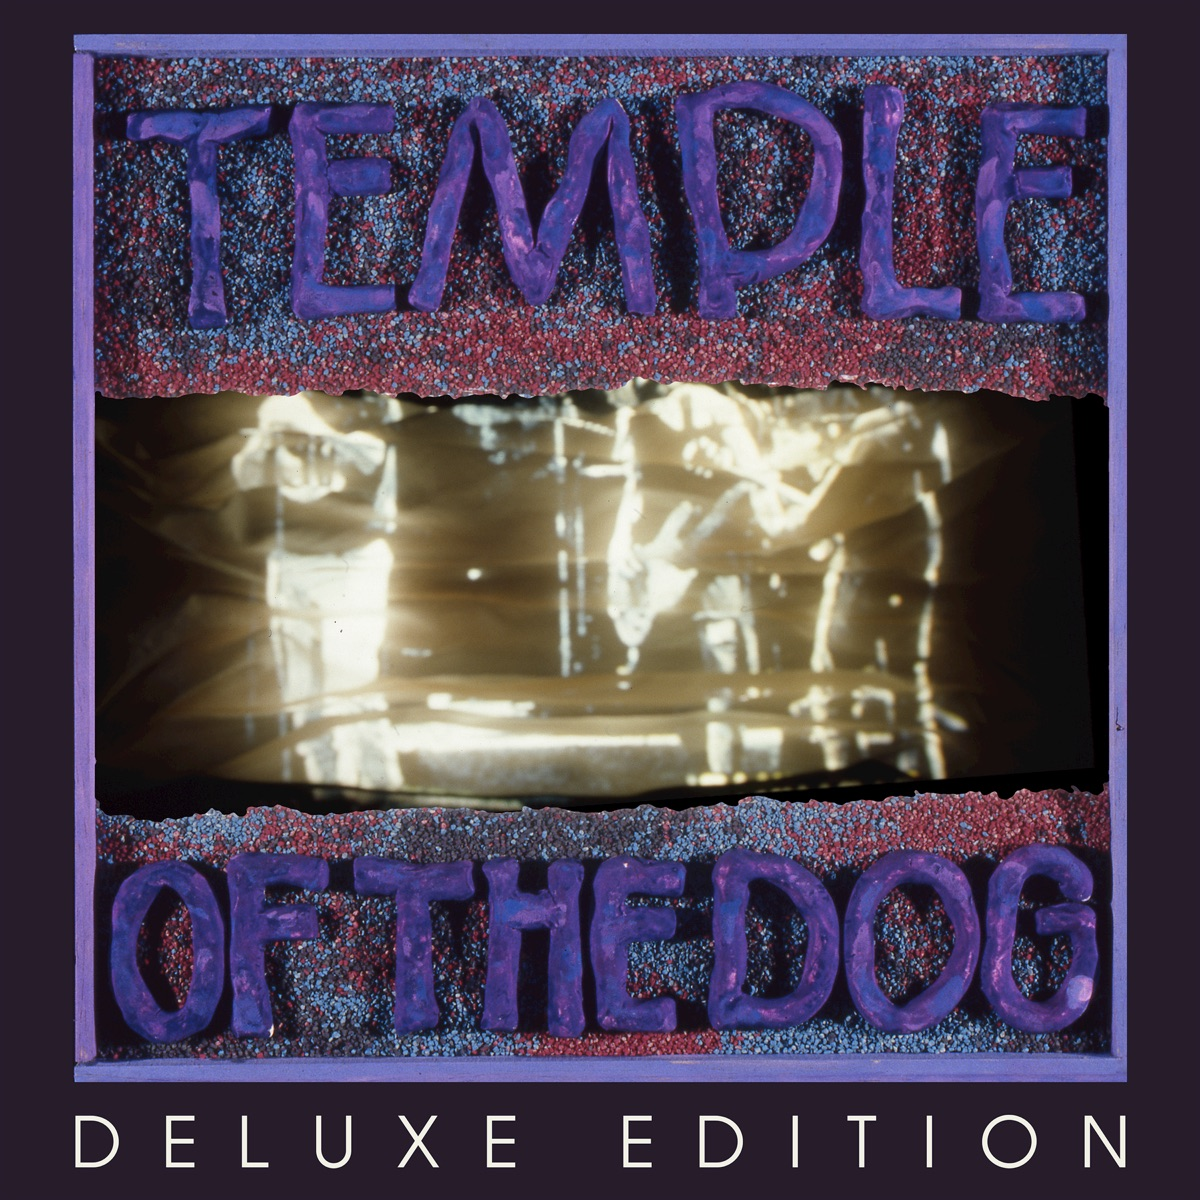 Say Hello 2 Heaven Alternate Mix - Single Temple of the Dog CD cover